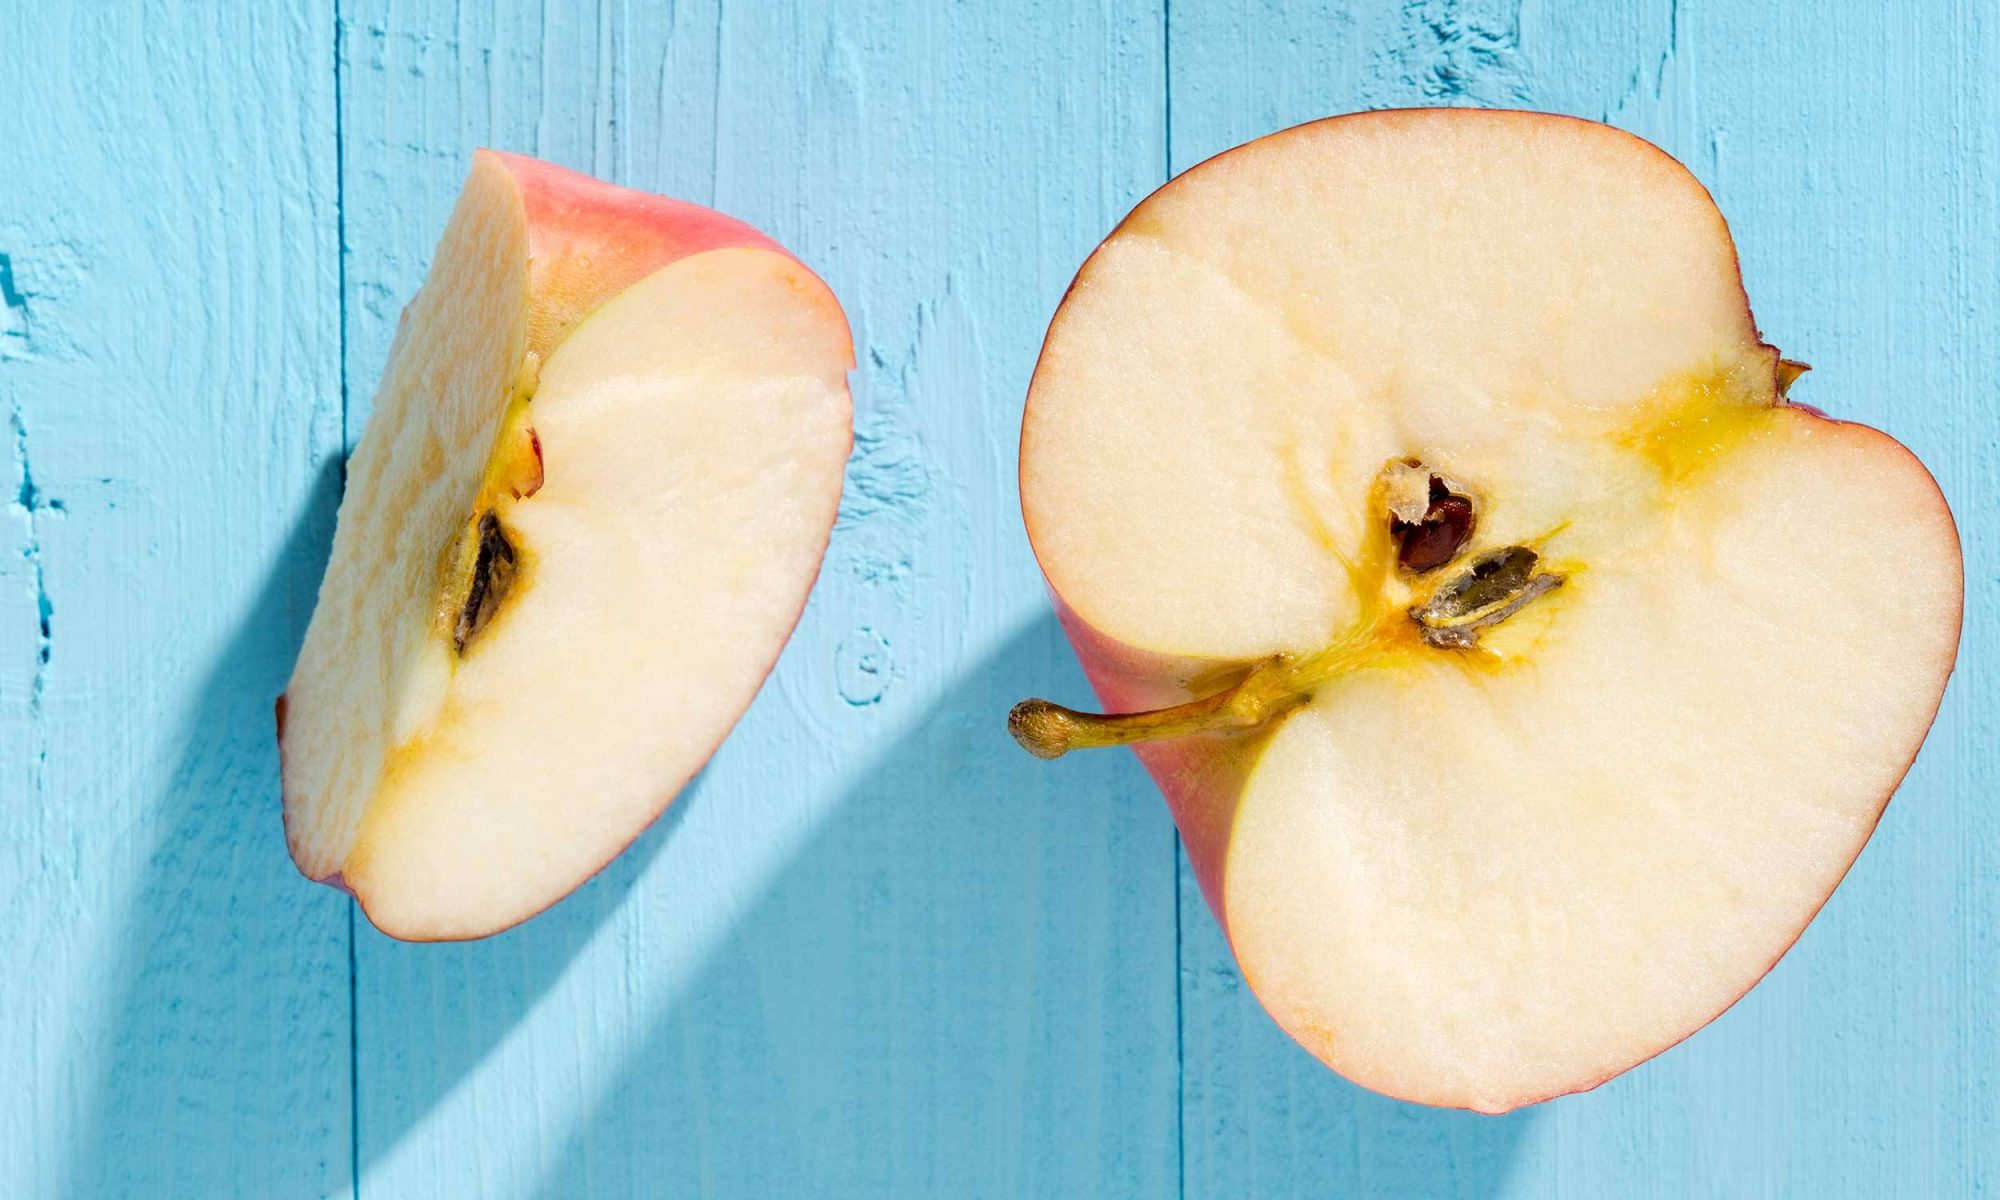 How to Prevent Apple Slices from Turning Brown